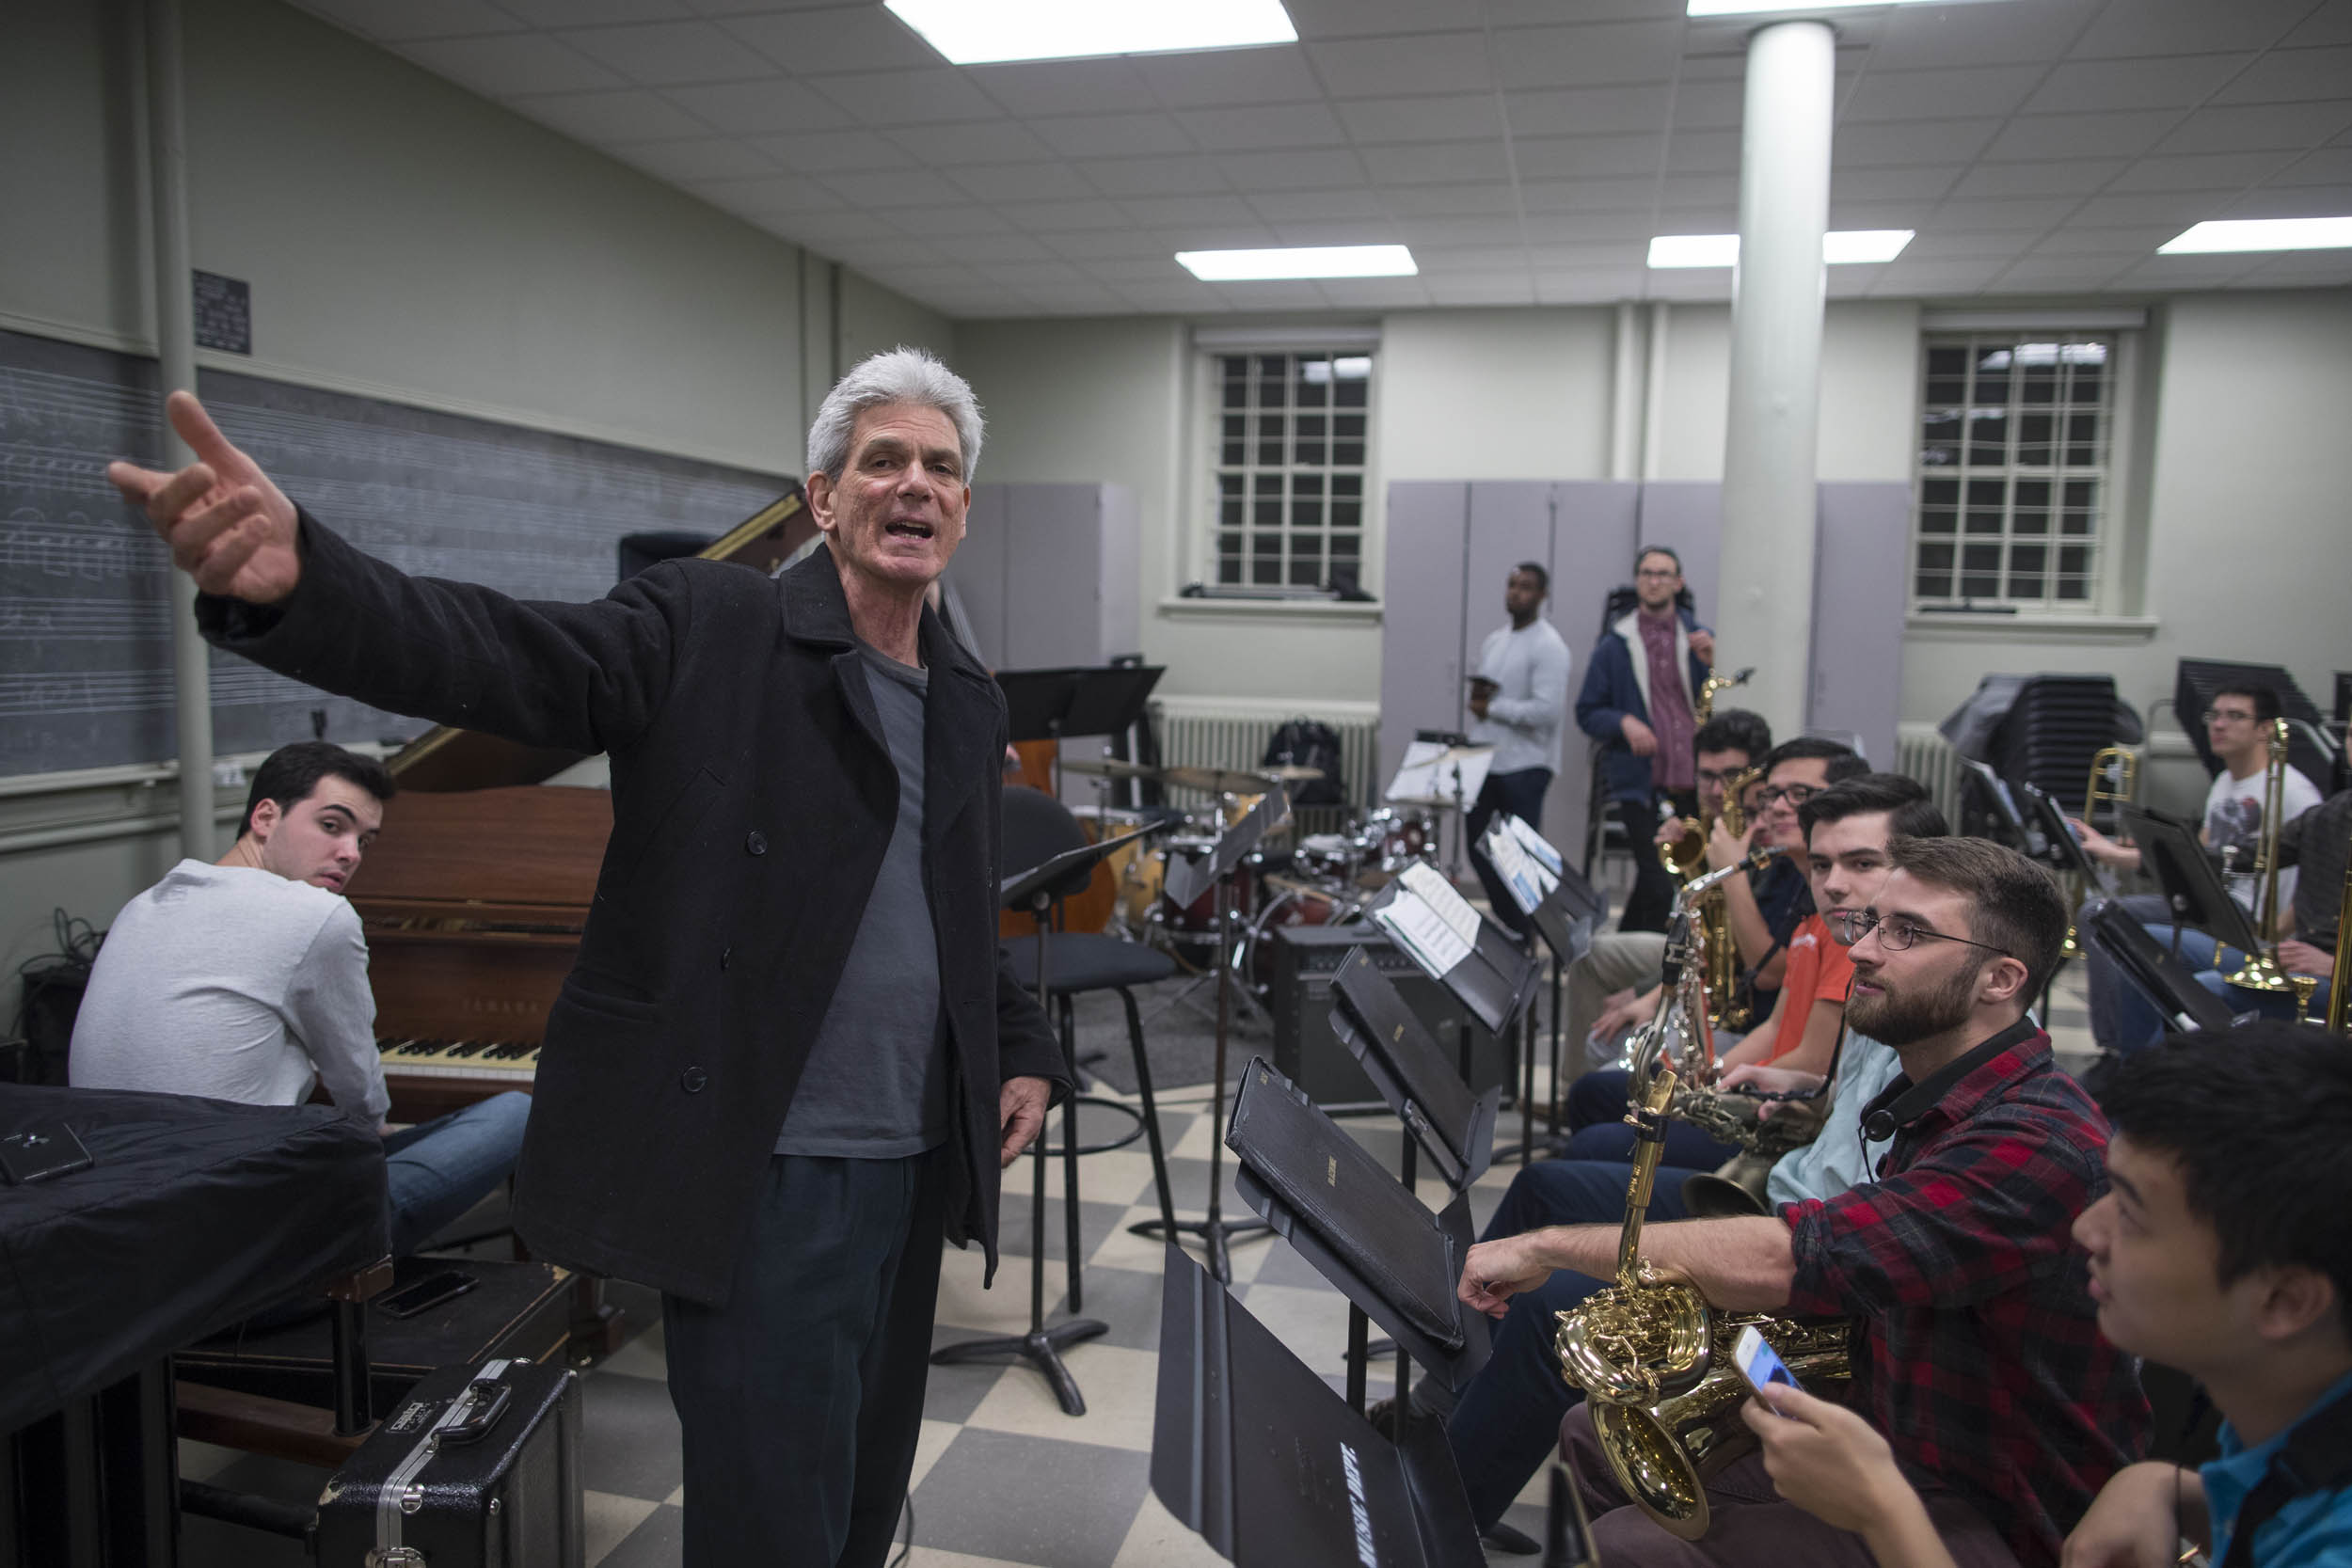 John D'earth of UVA's McIntire Department of Music said part of the ensemble's goal is to get students comfortable with improvising in a big band setting.